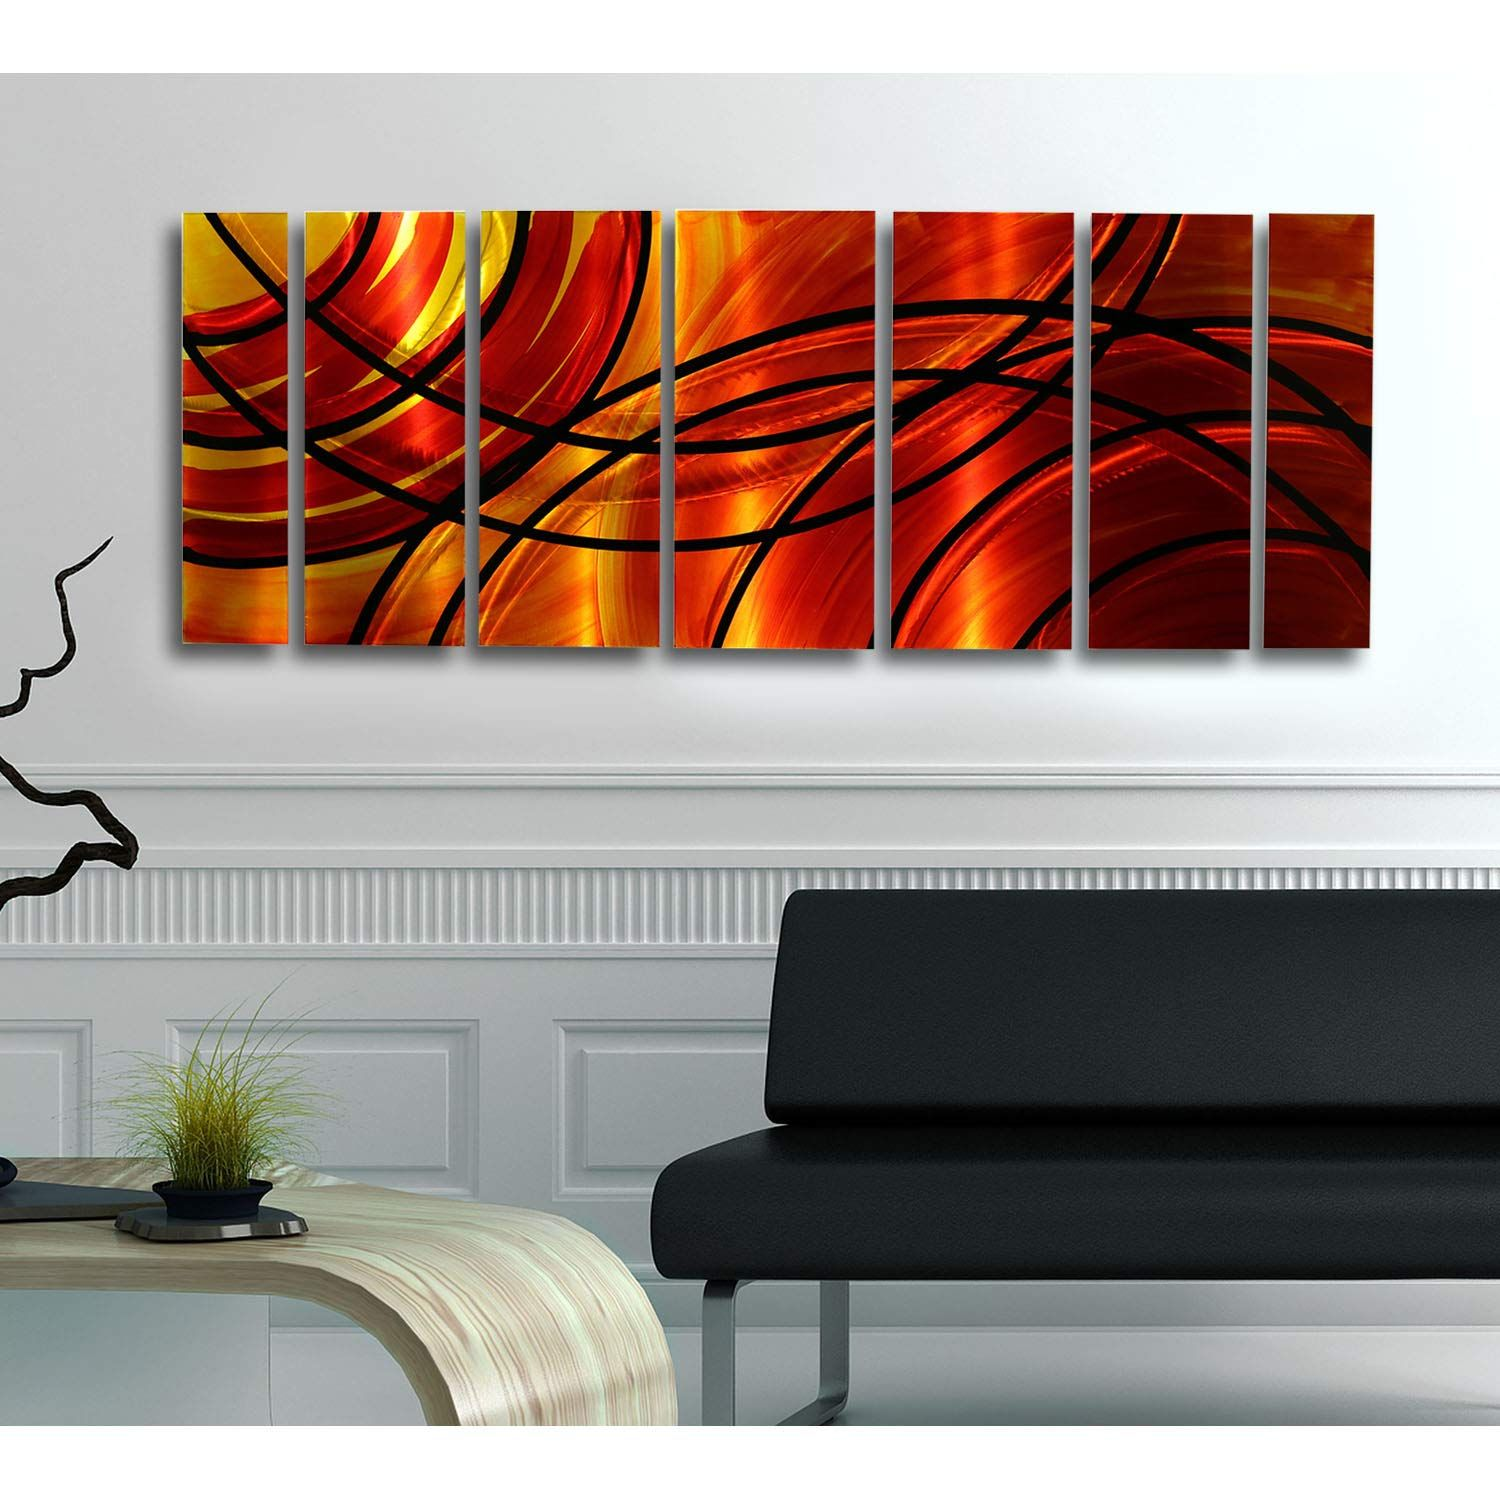 Red Orange Gold Black Abstract Metal Wall Art Painting Abstract Metal Wall Art Large Metal Wall Art Hand Painted Wall Art